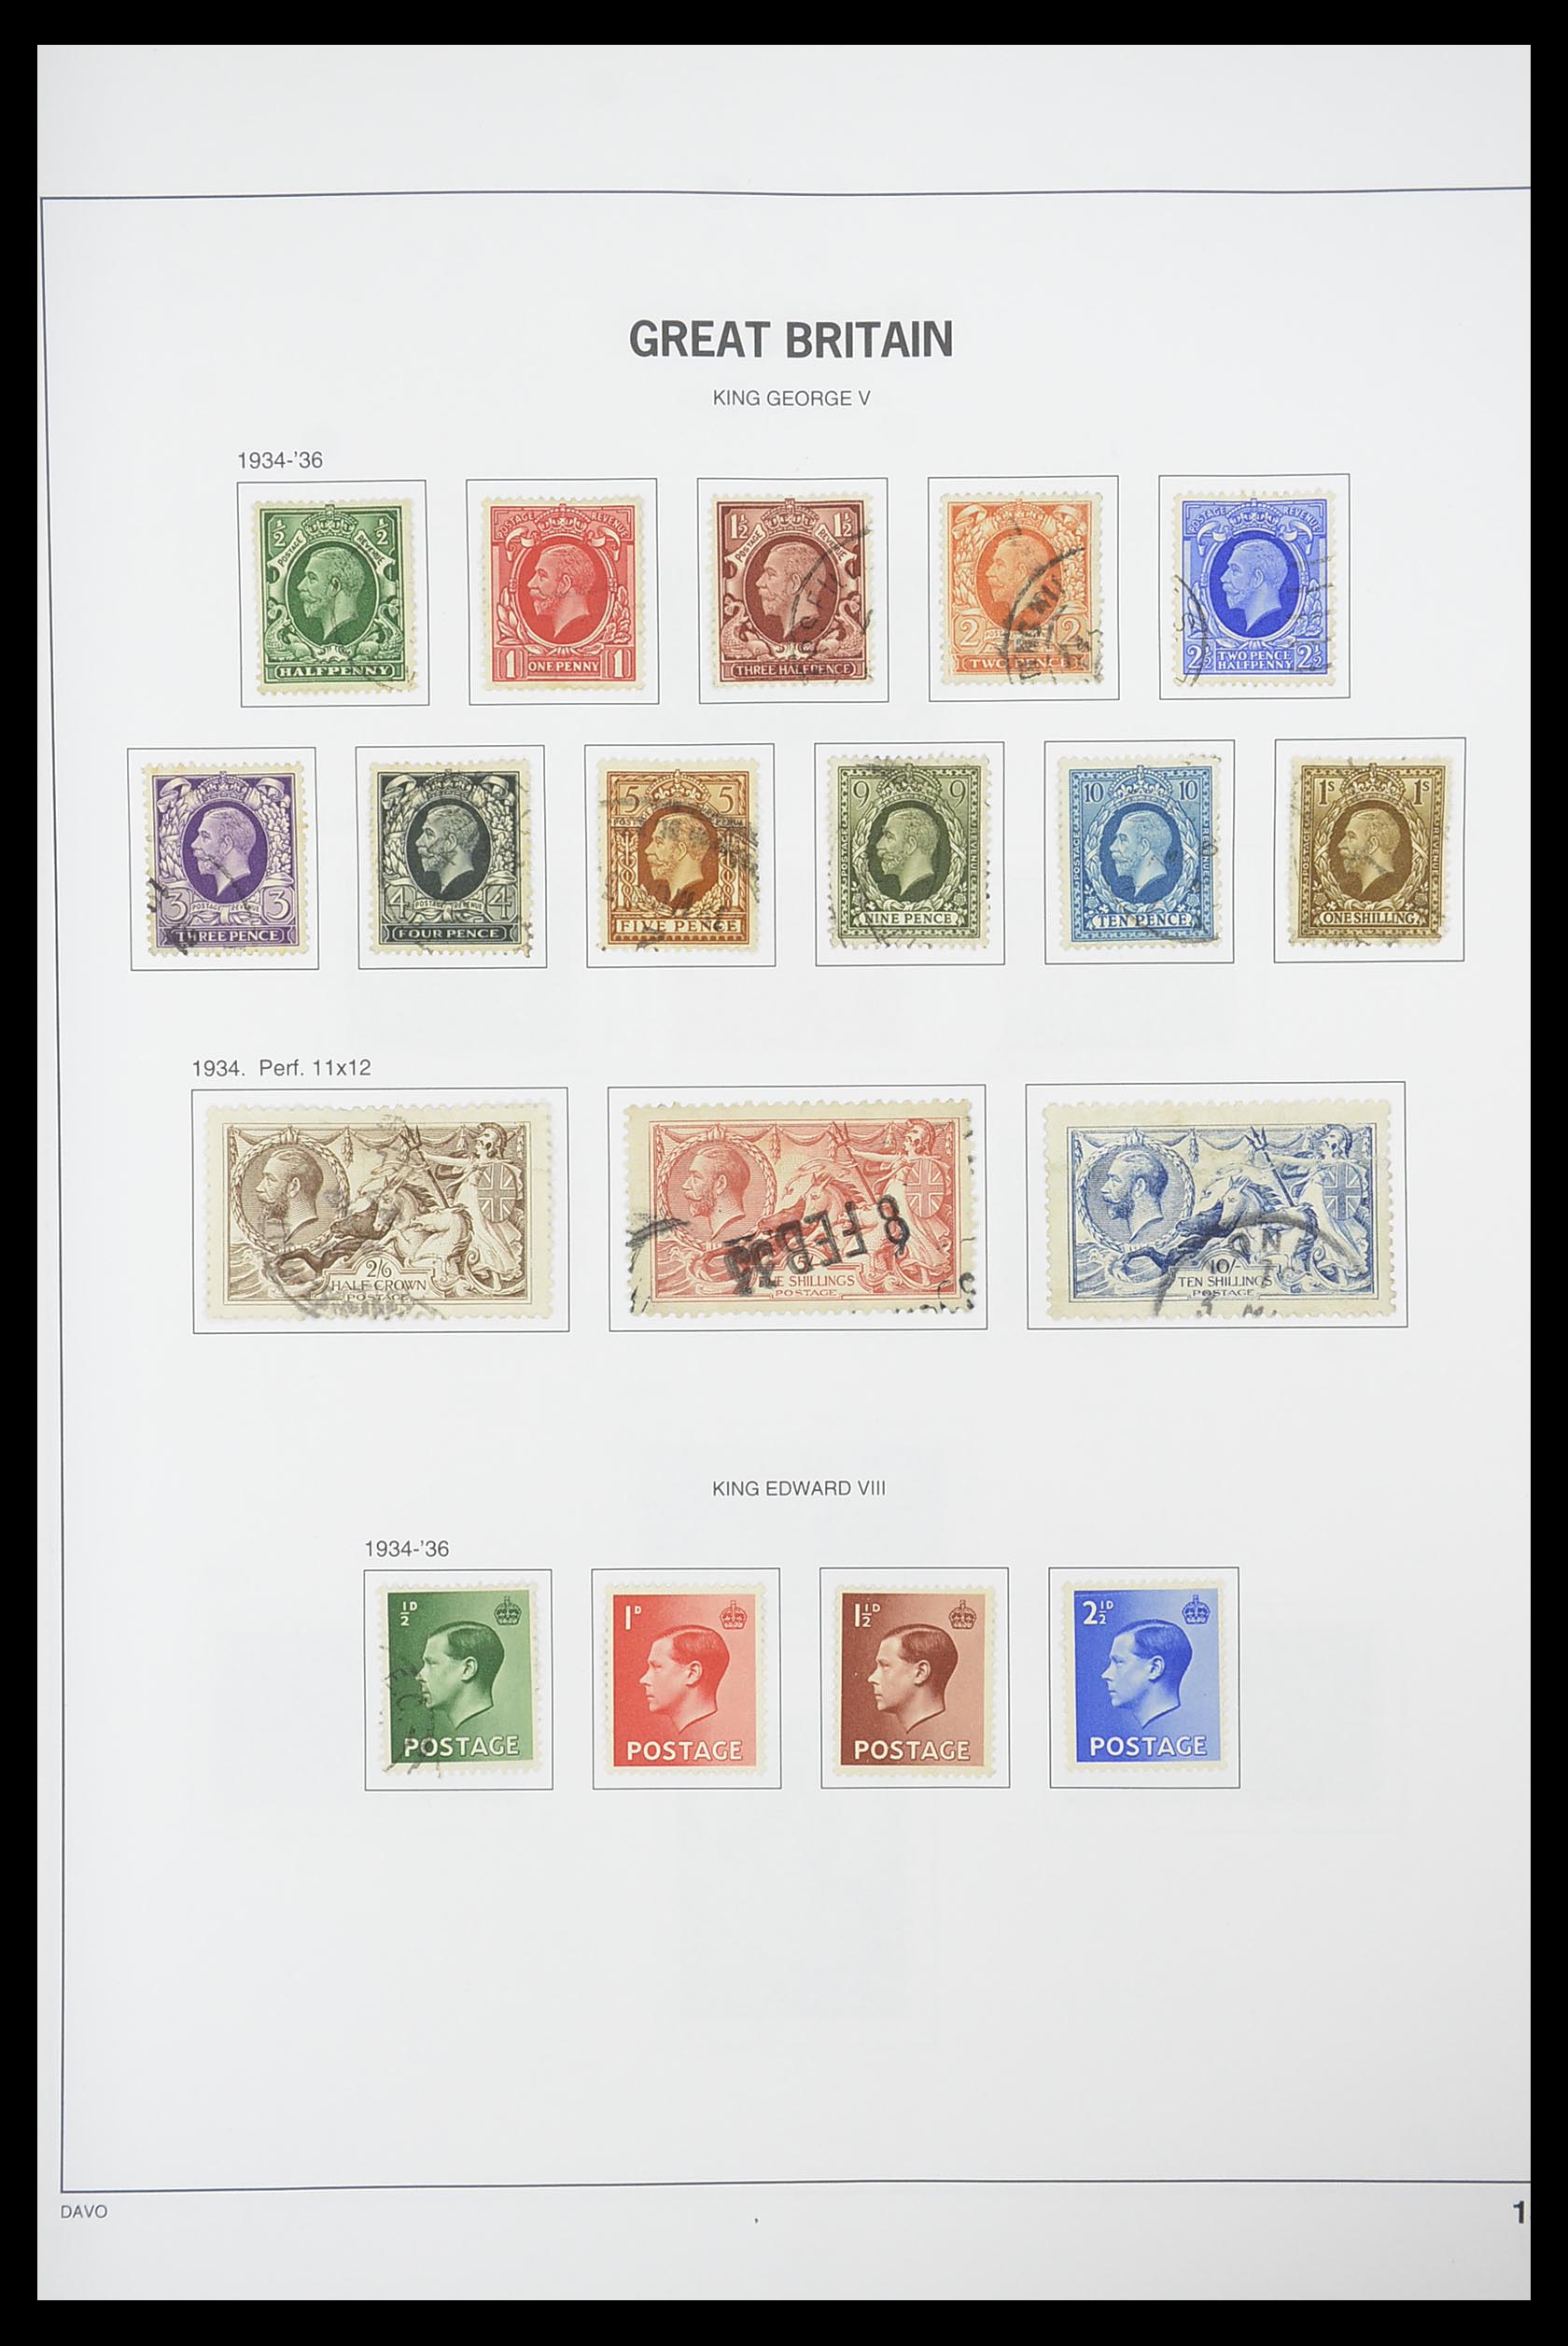 33898 012 - Stamp collection 33898 Great Britain 1840-2006.